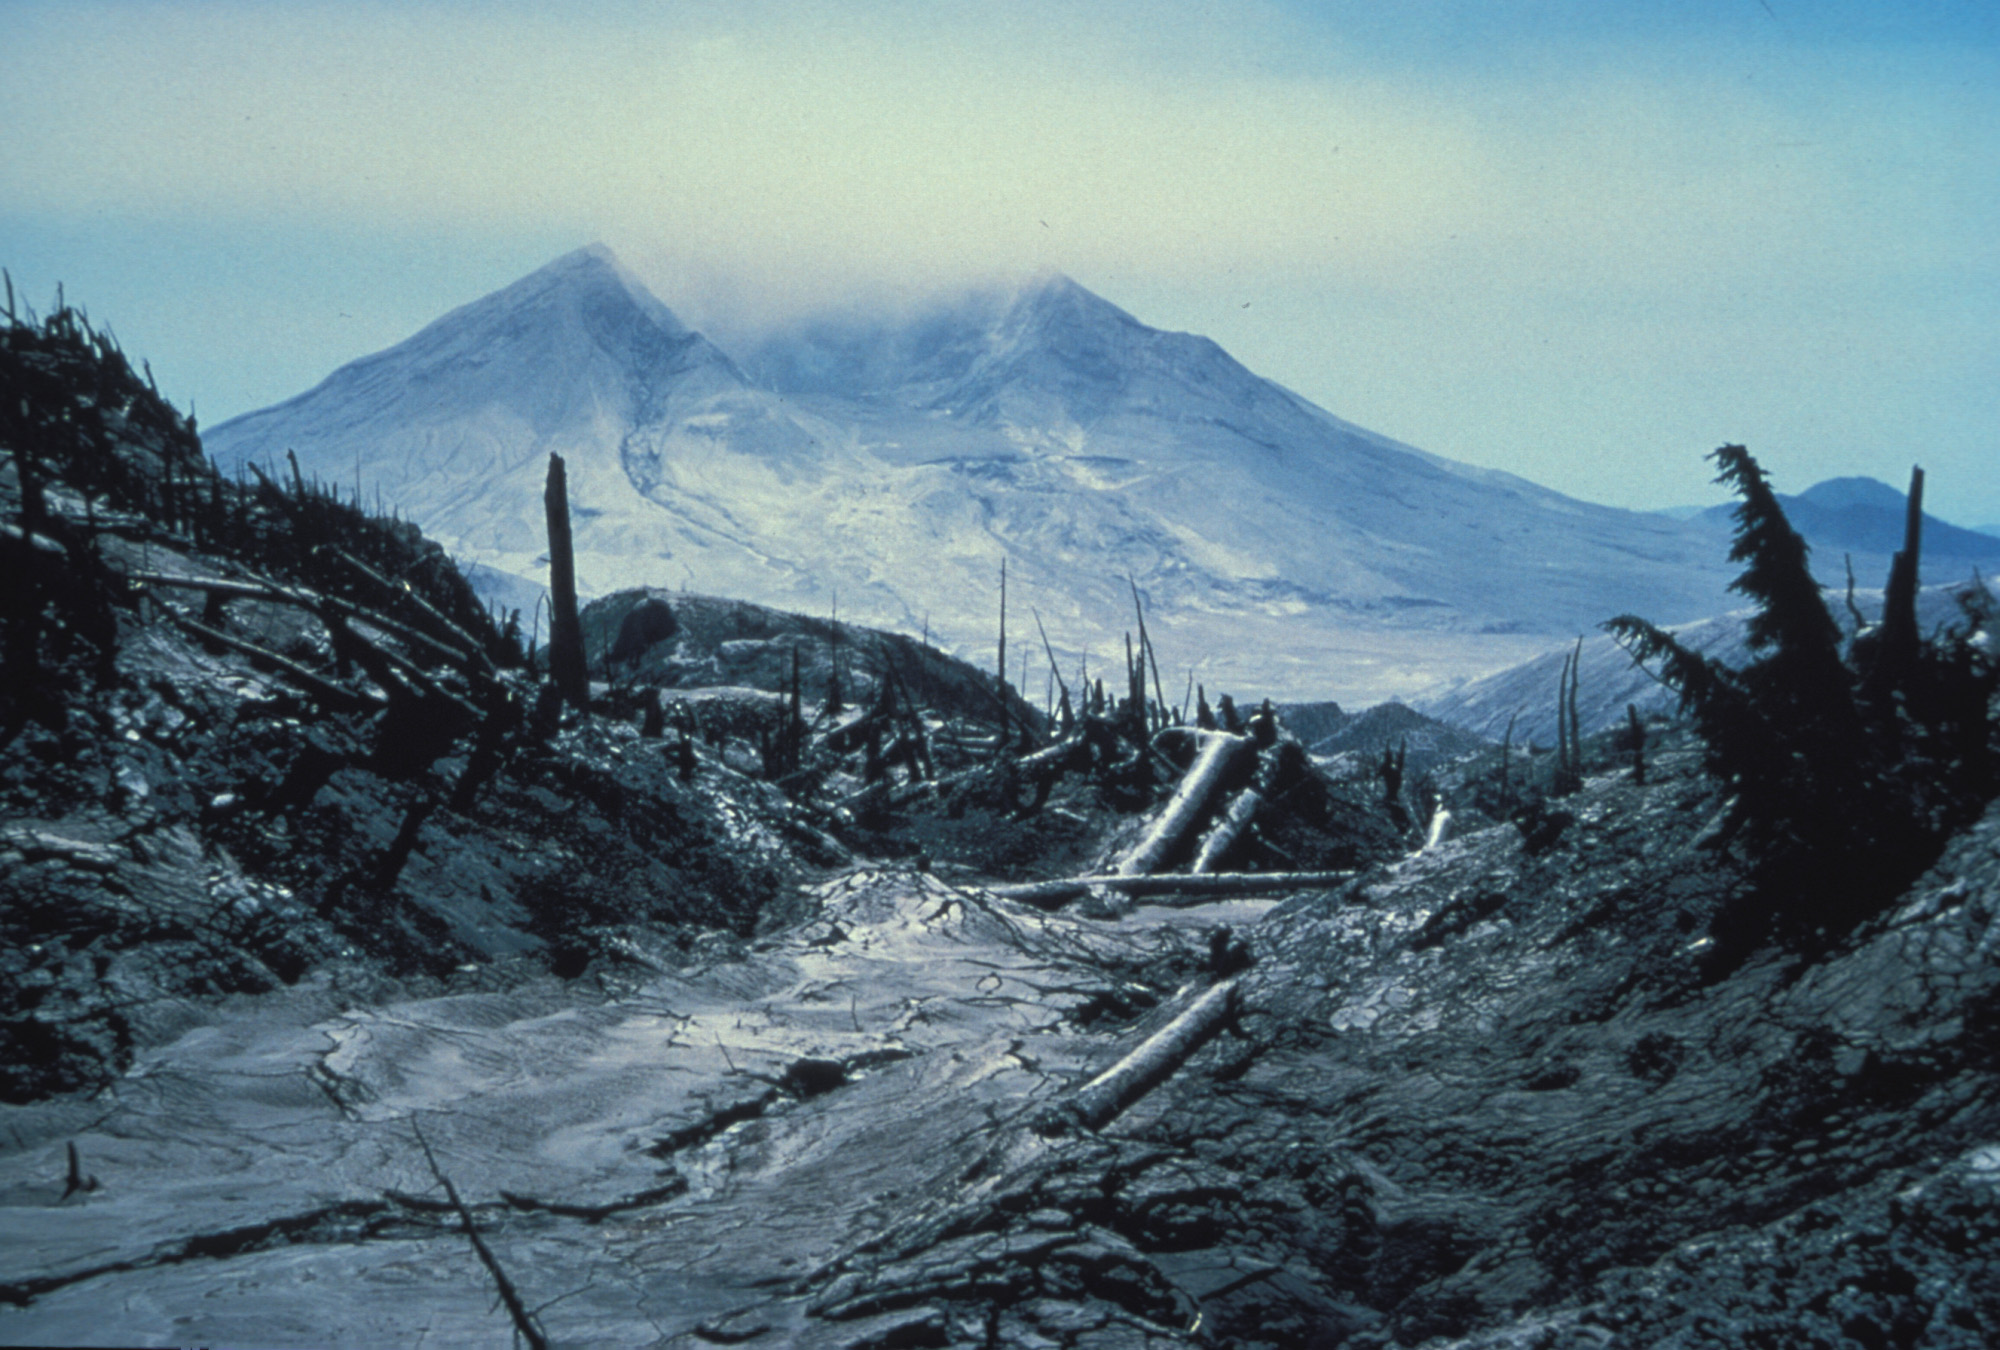 View of Mt. St. Helens from Mt. Margaret, July 27 1980